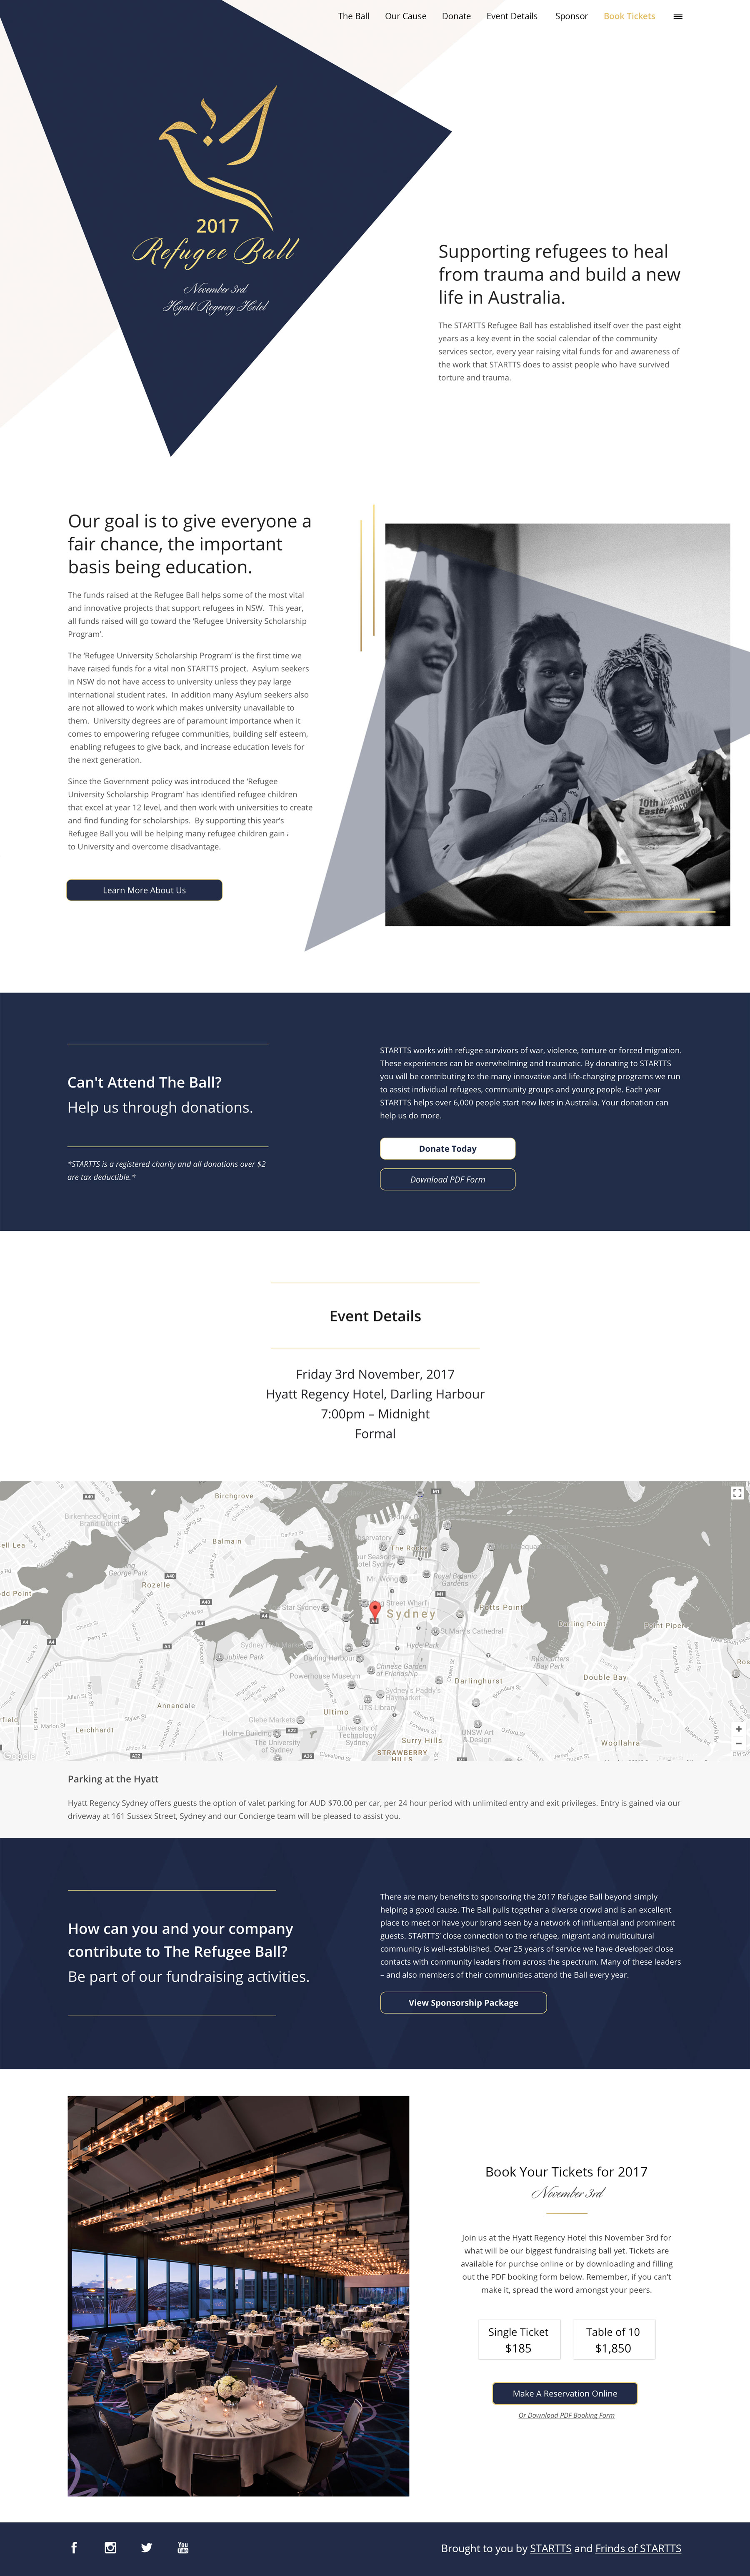 The_Ink_Collective_STARTTS_Refugee_Ball_2017_Home_Page_Mockup_4.jpg